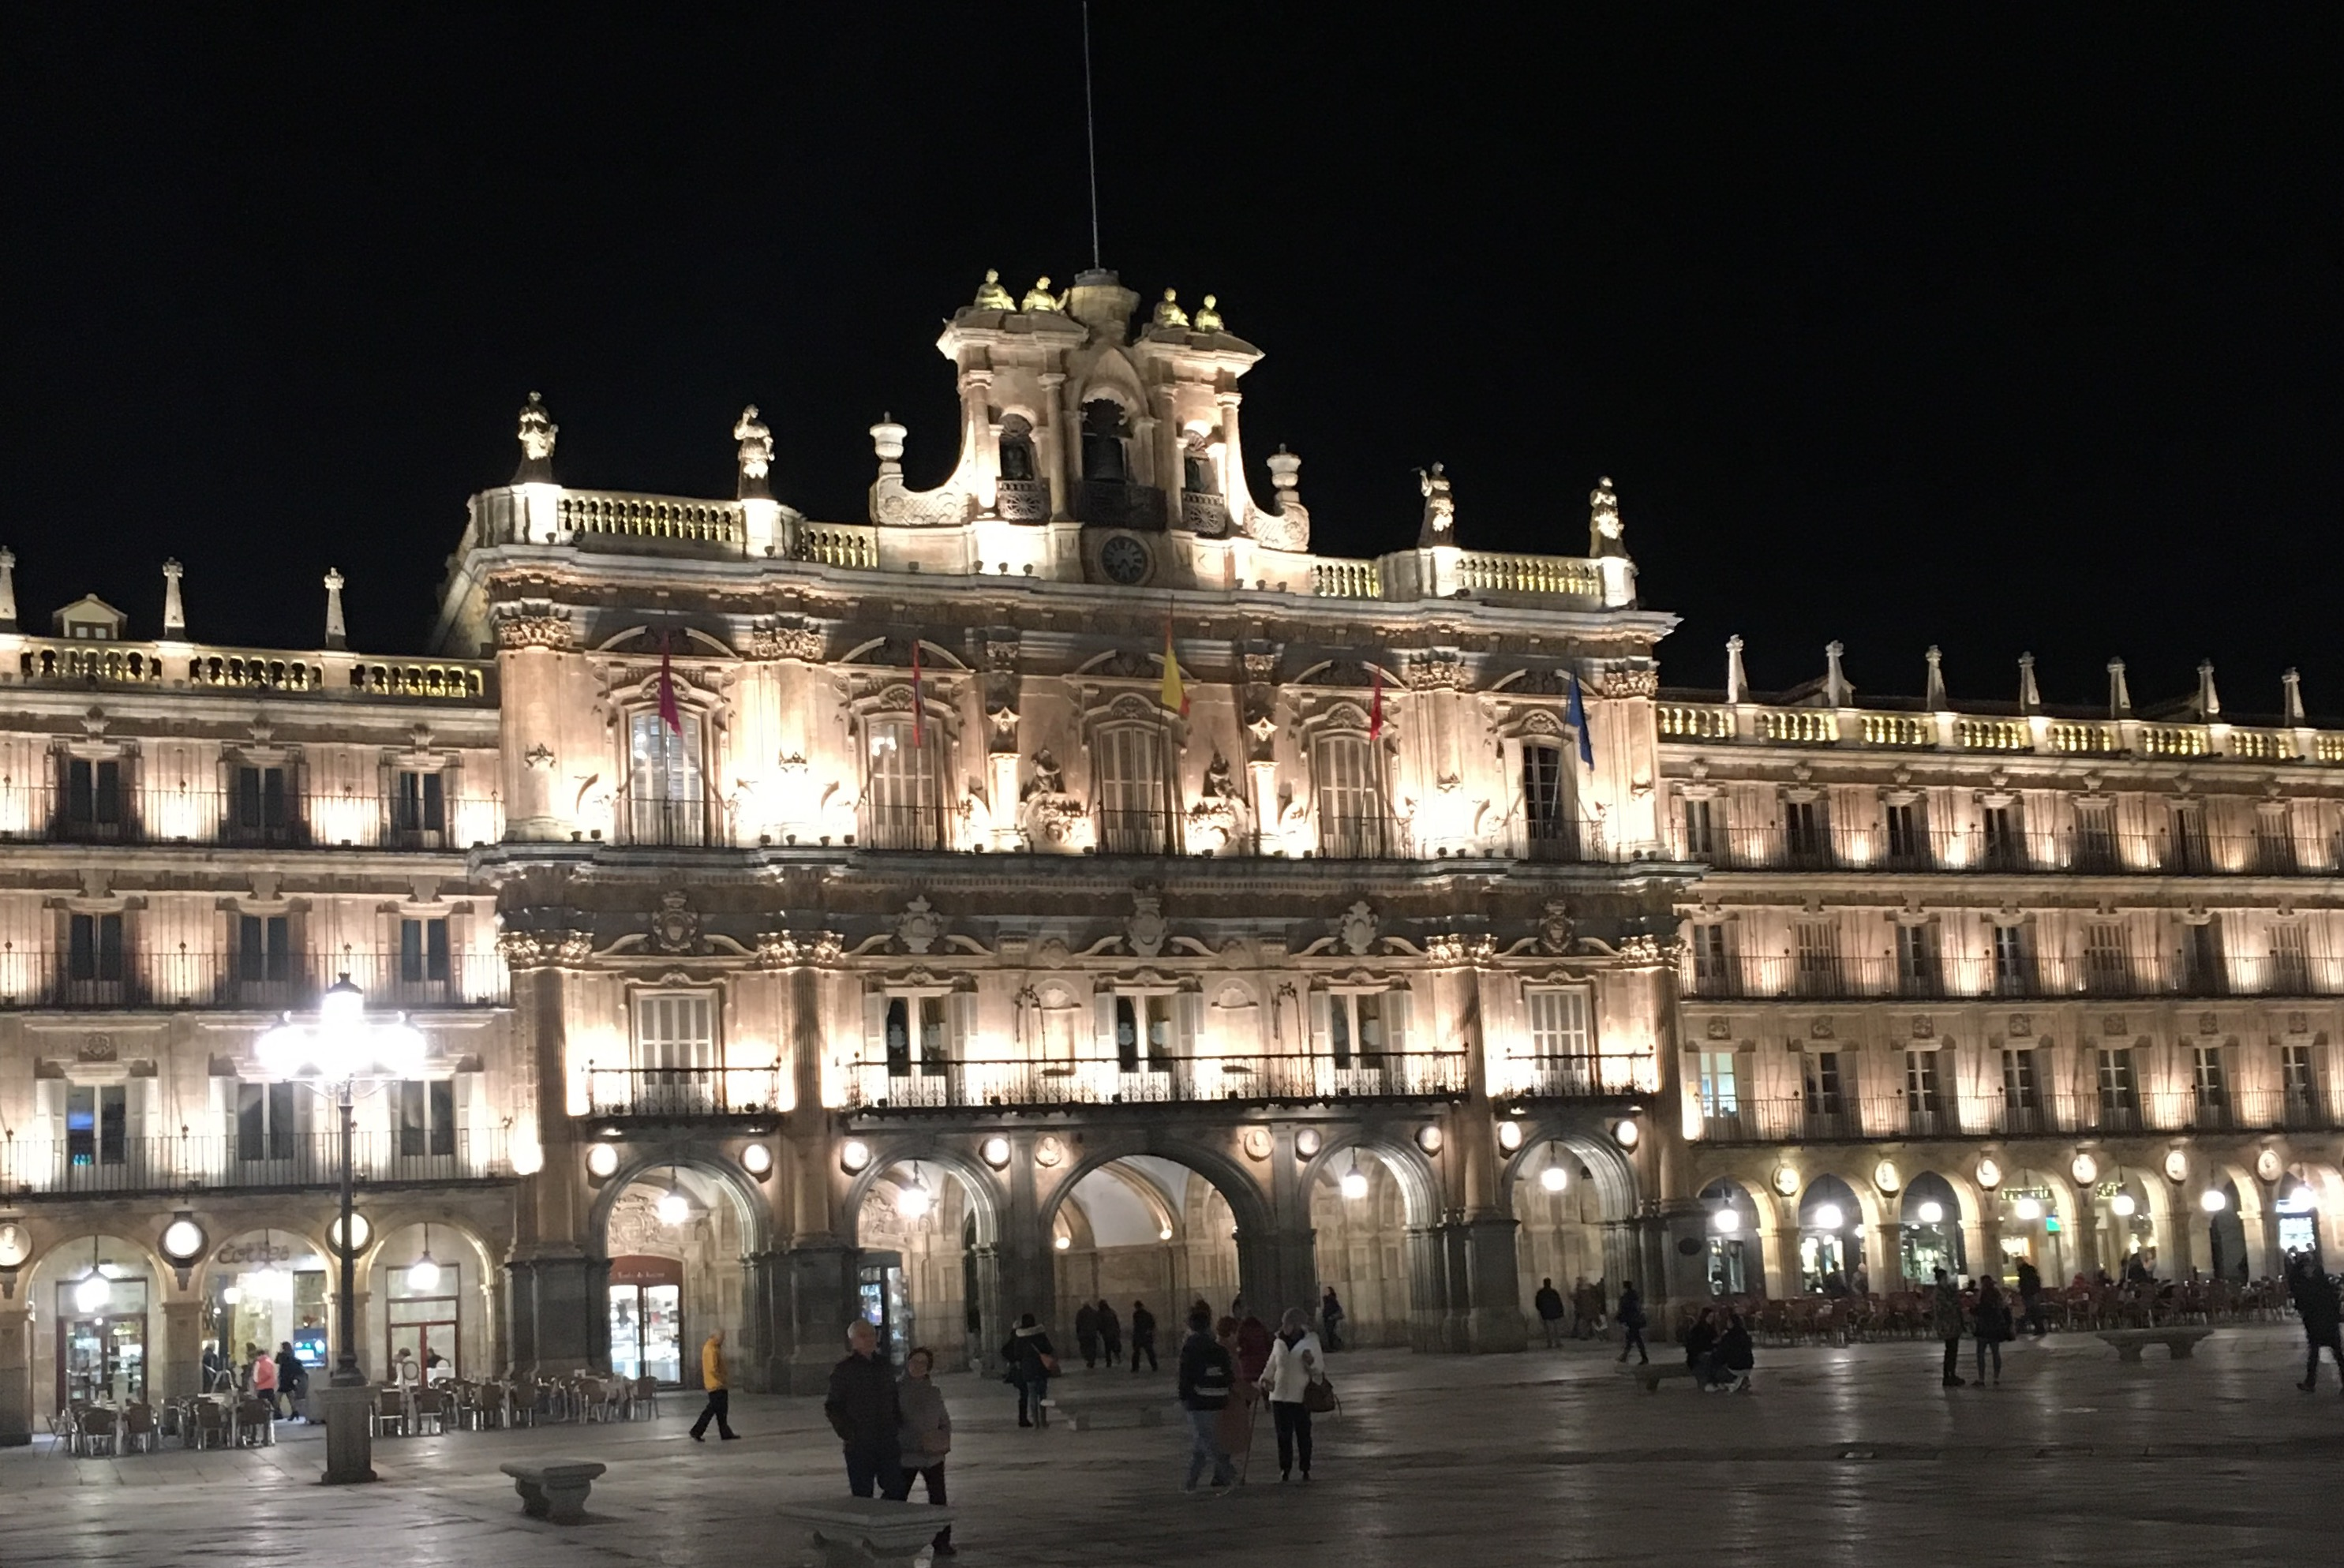 La Plaza Mayor of Salamanca at night.